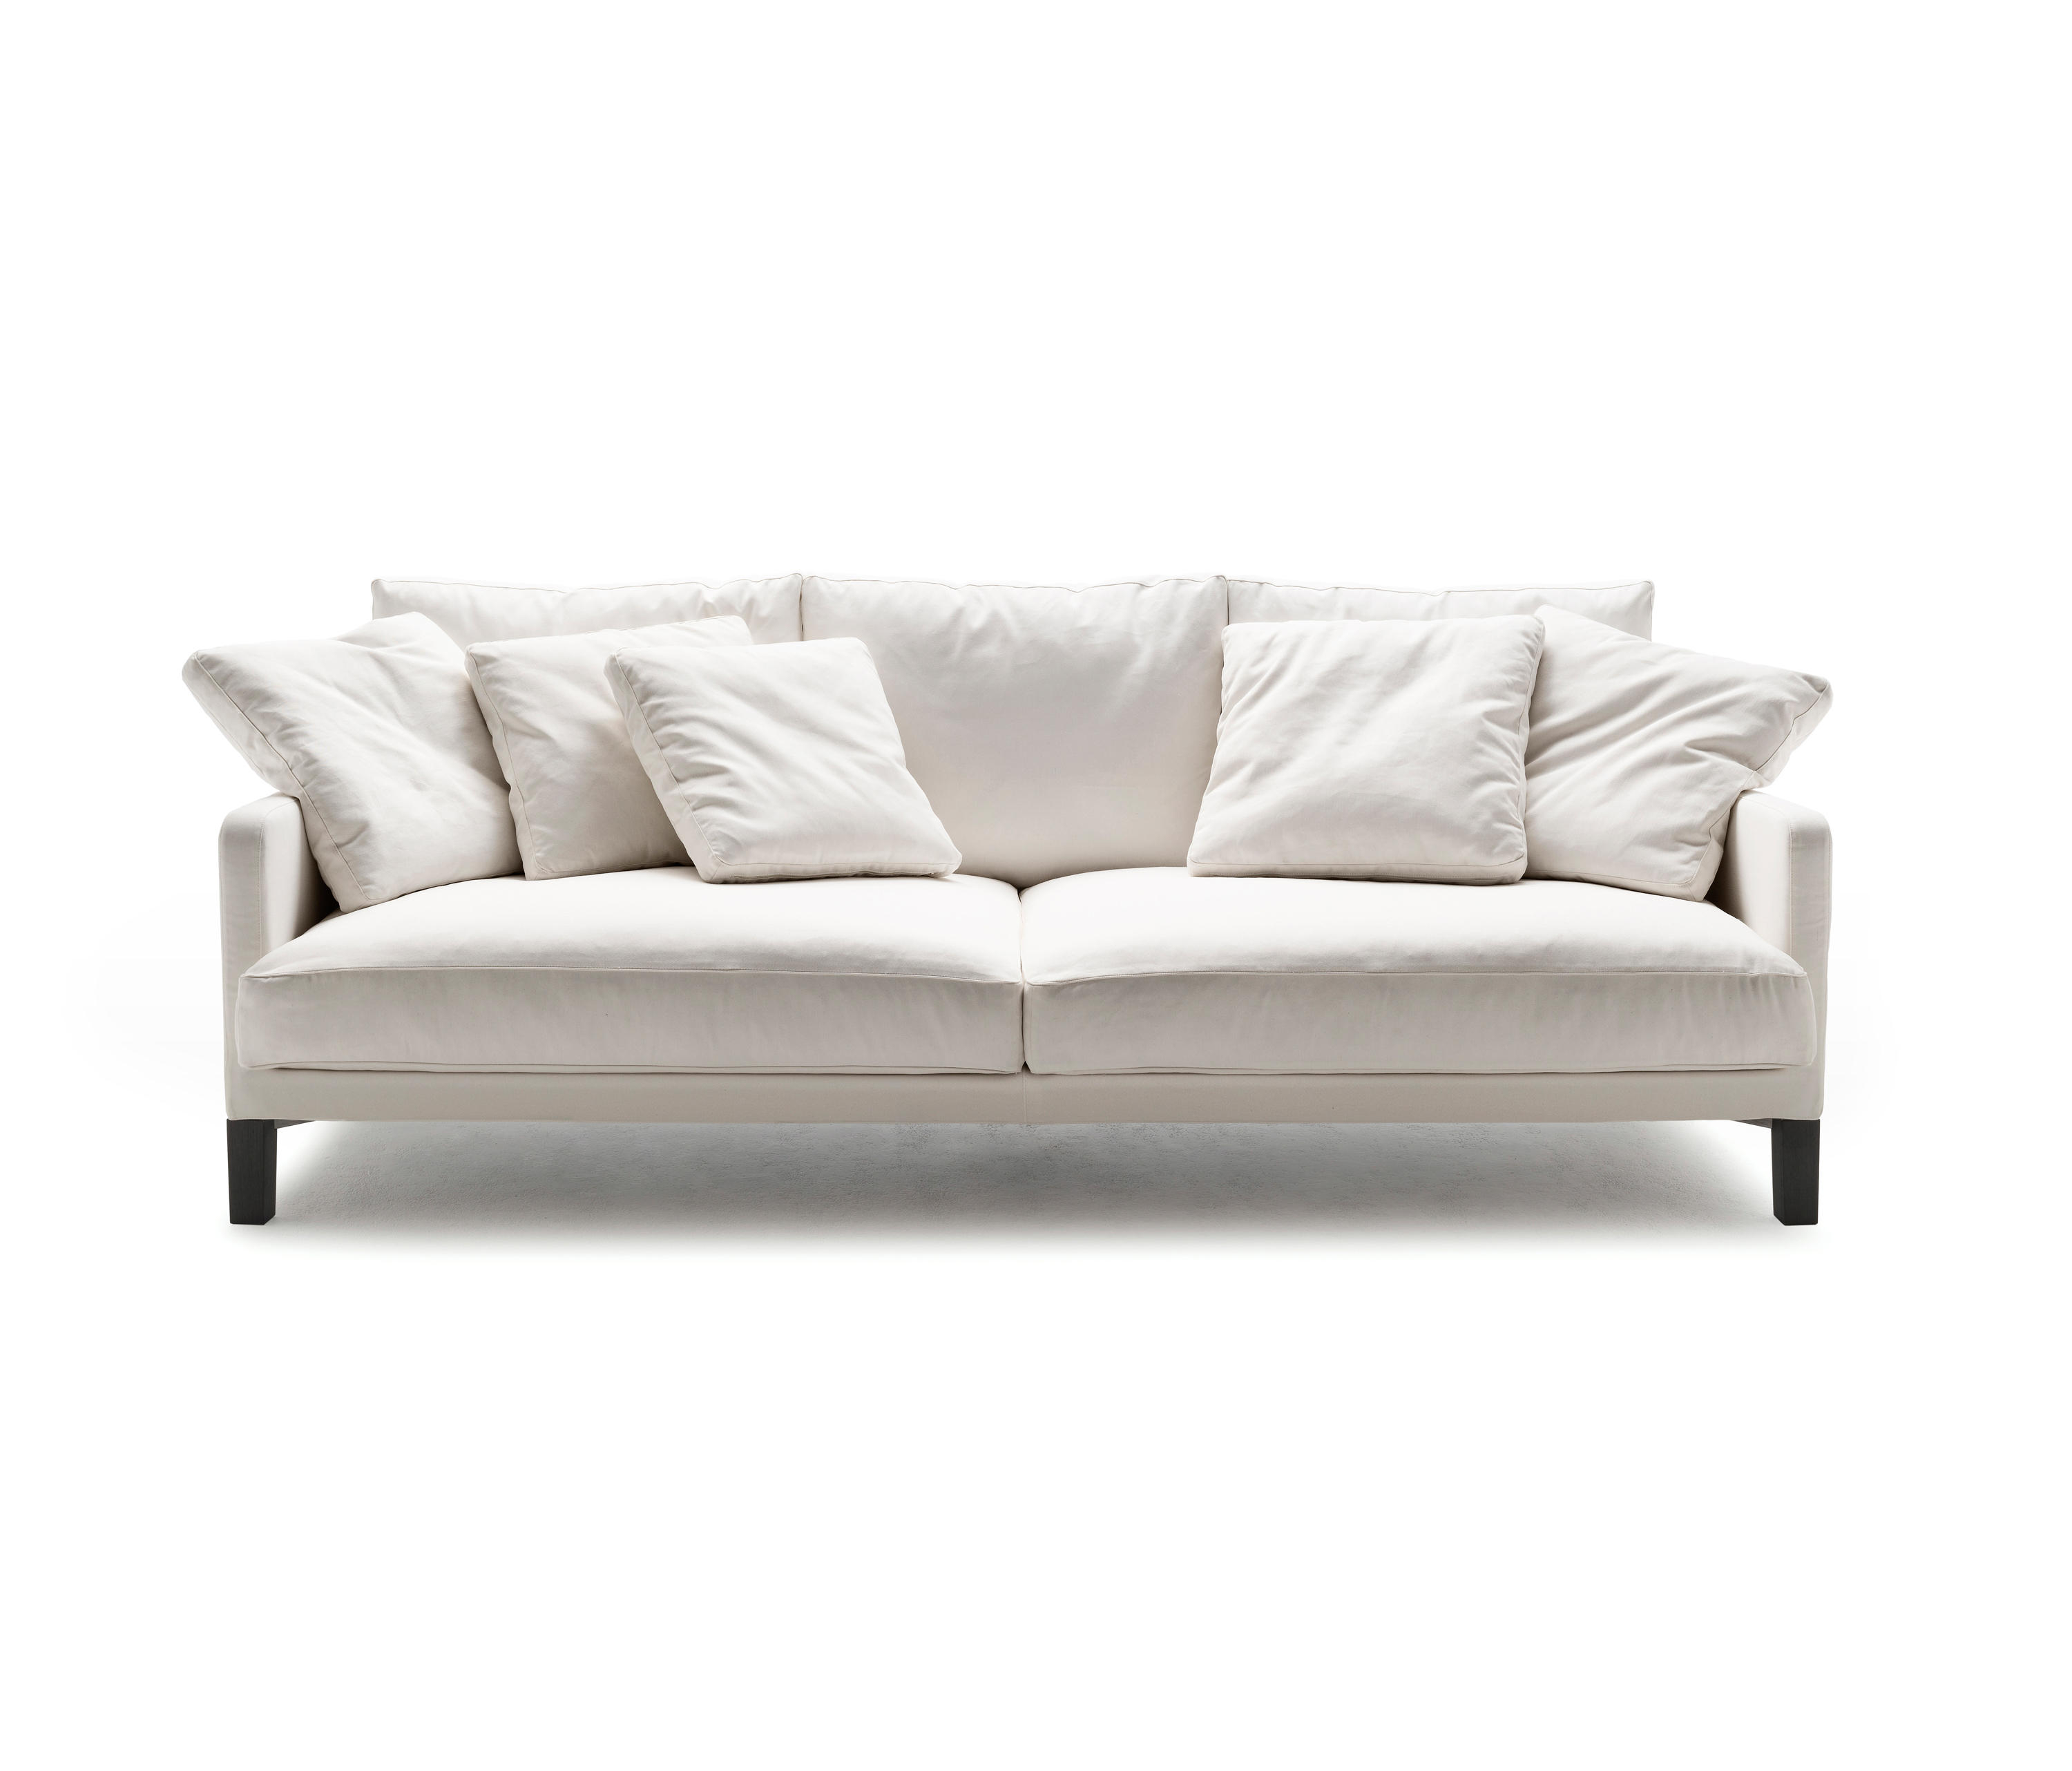 Divano sofas D0dg sofas Research and Select Living Divani Products Online Architonic